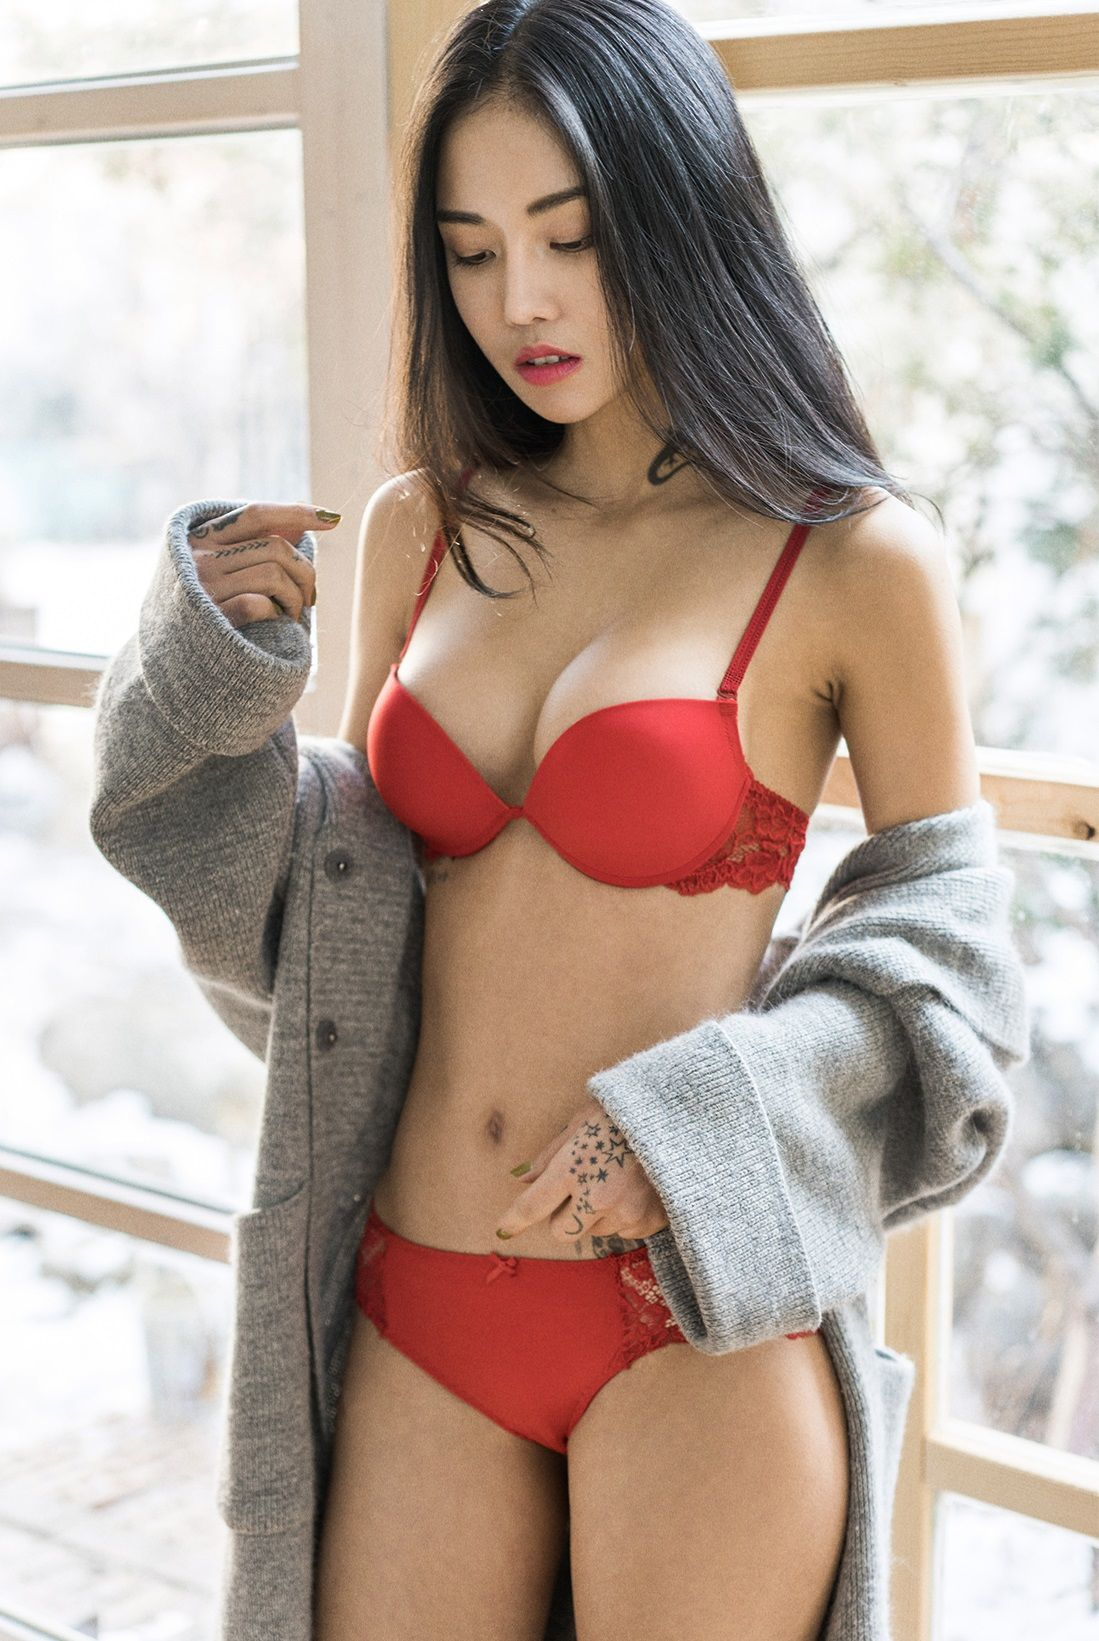 Curly lingerie asian shared